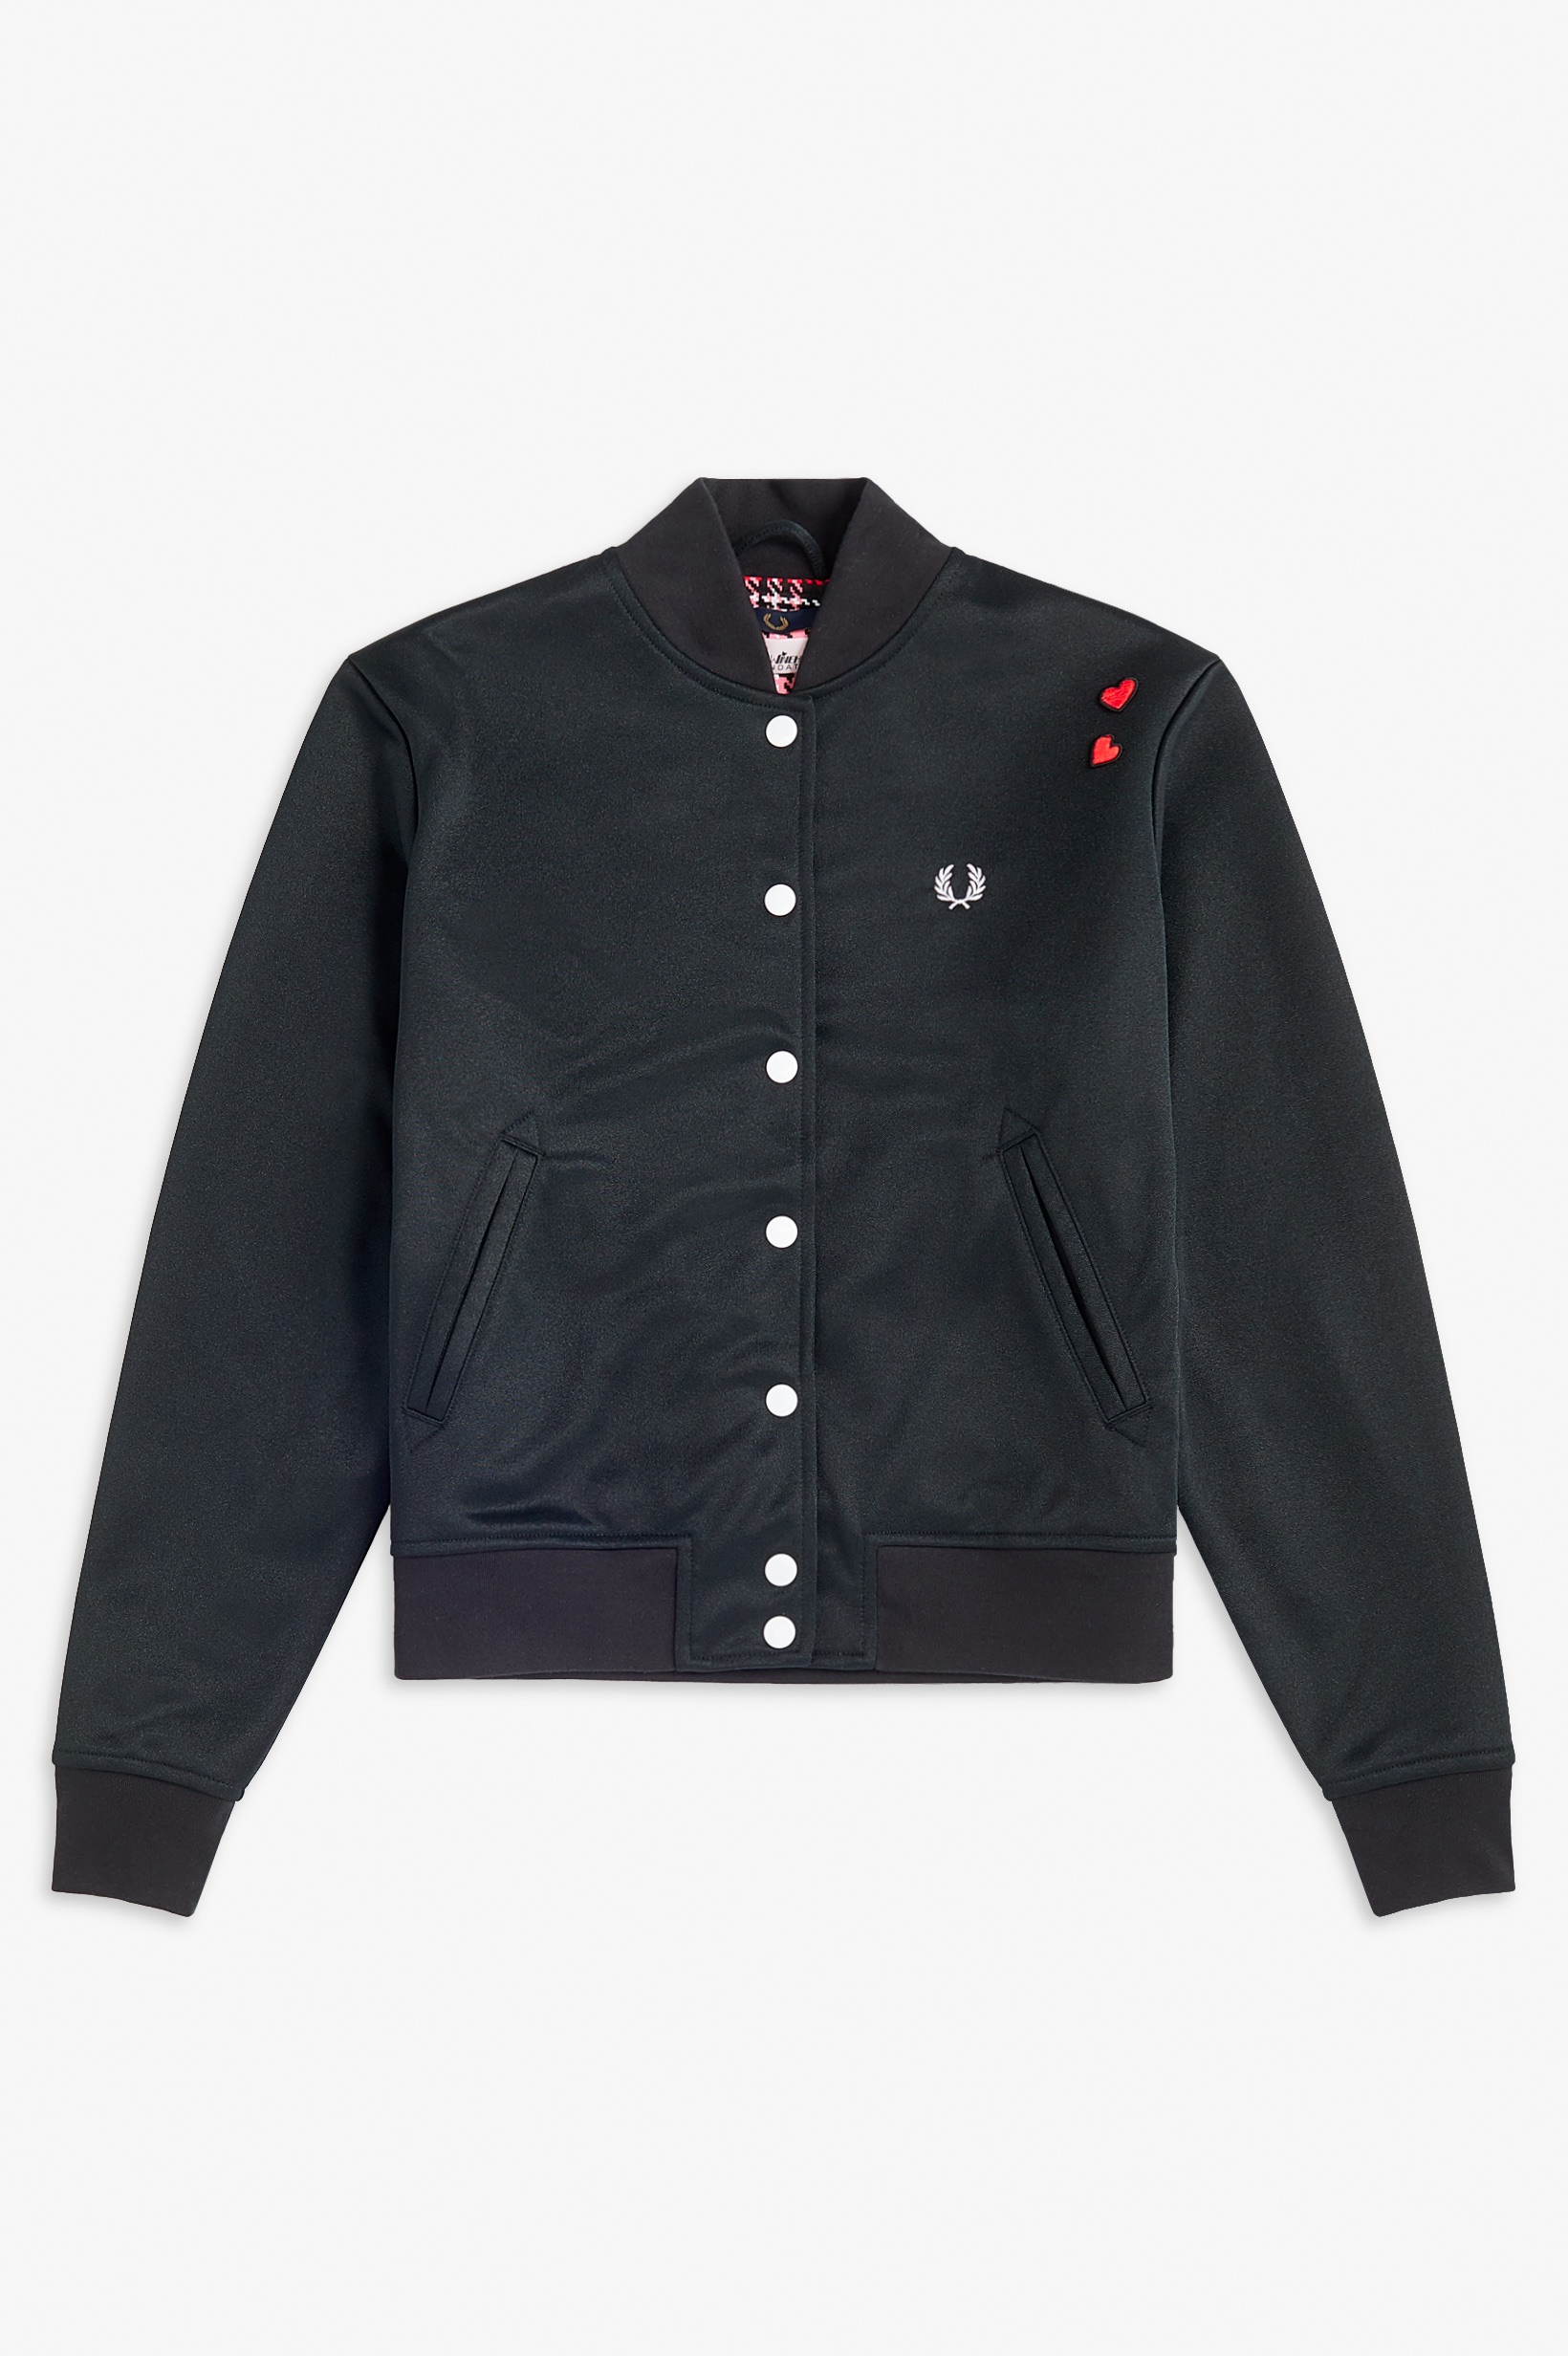 FRED PERRY x AMY WINEHOUSE FOUNDATION